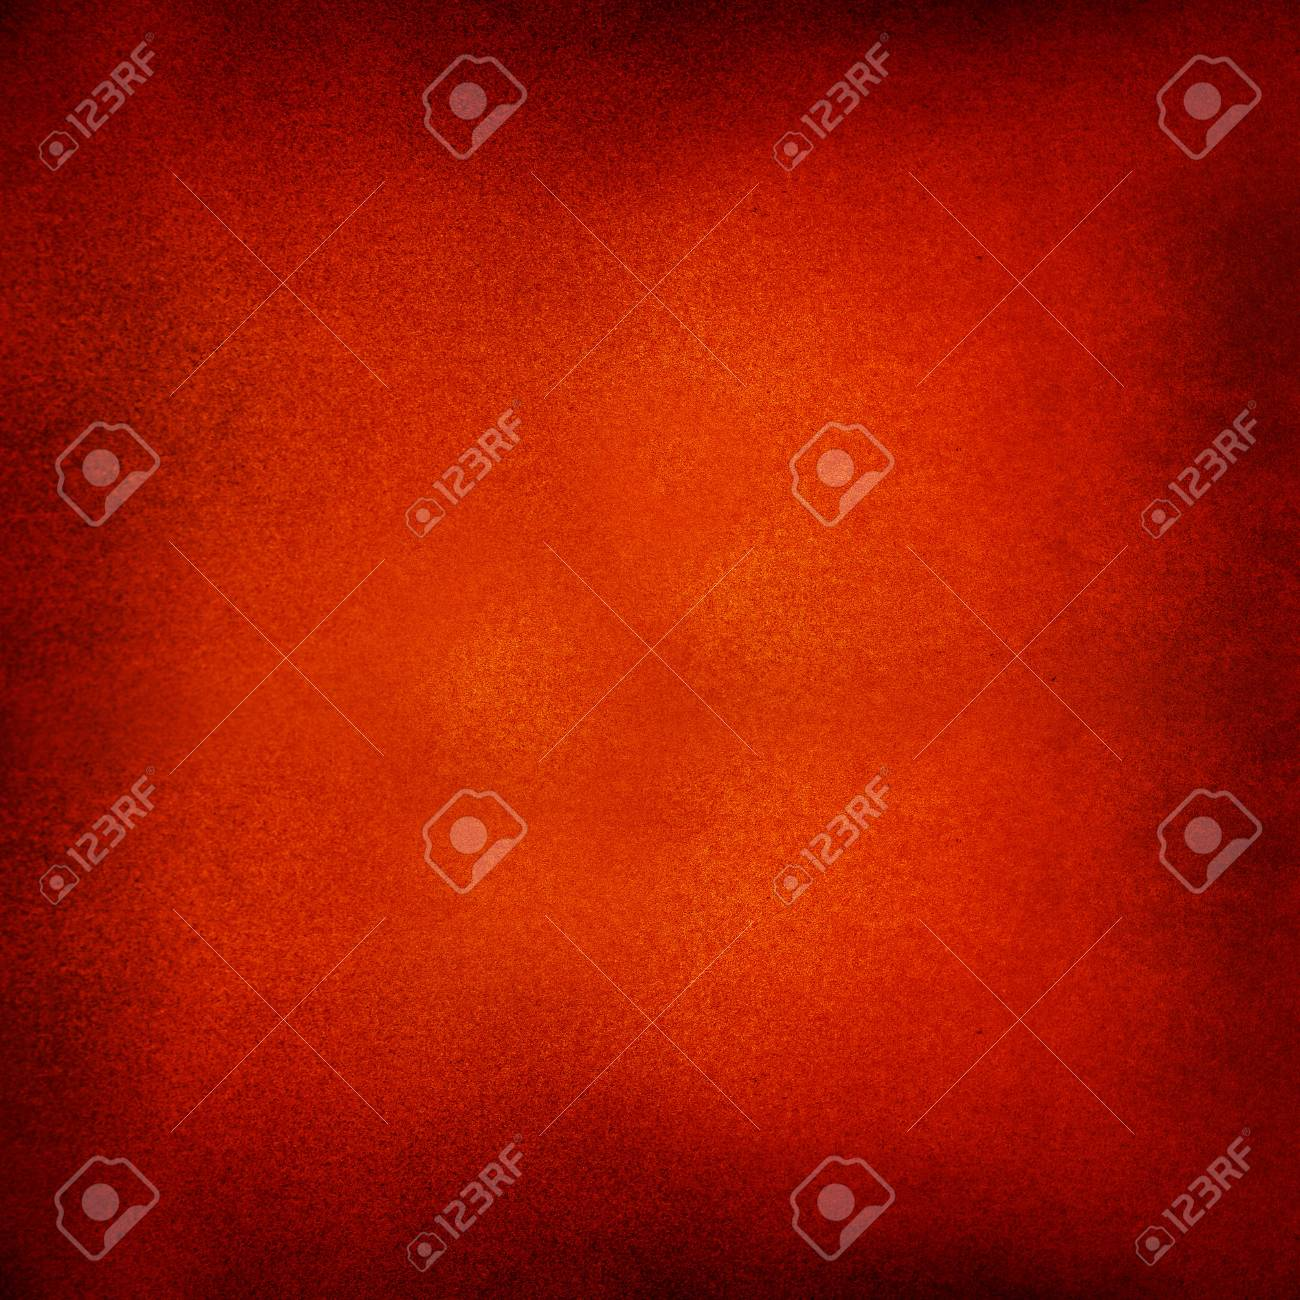 Abstract vivid grunge red background with noise grain texture